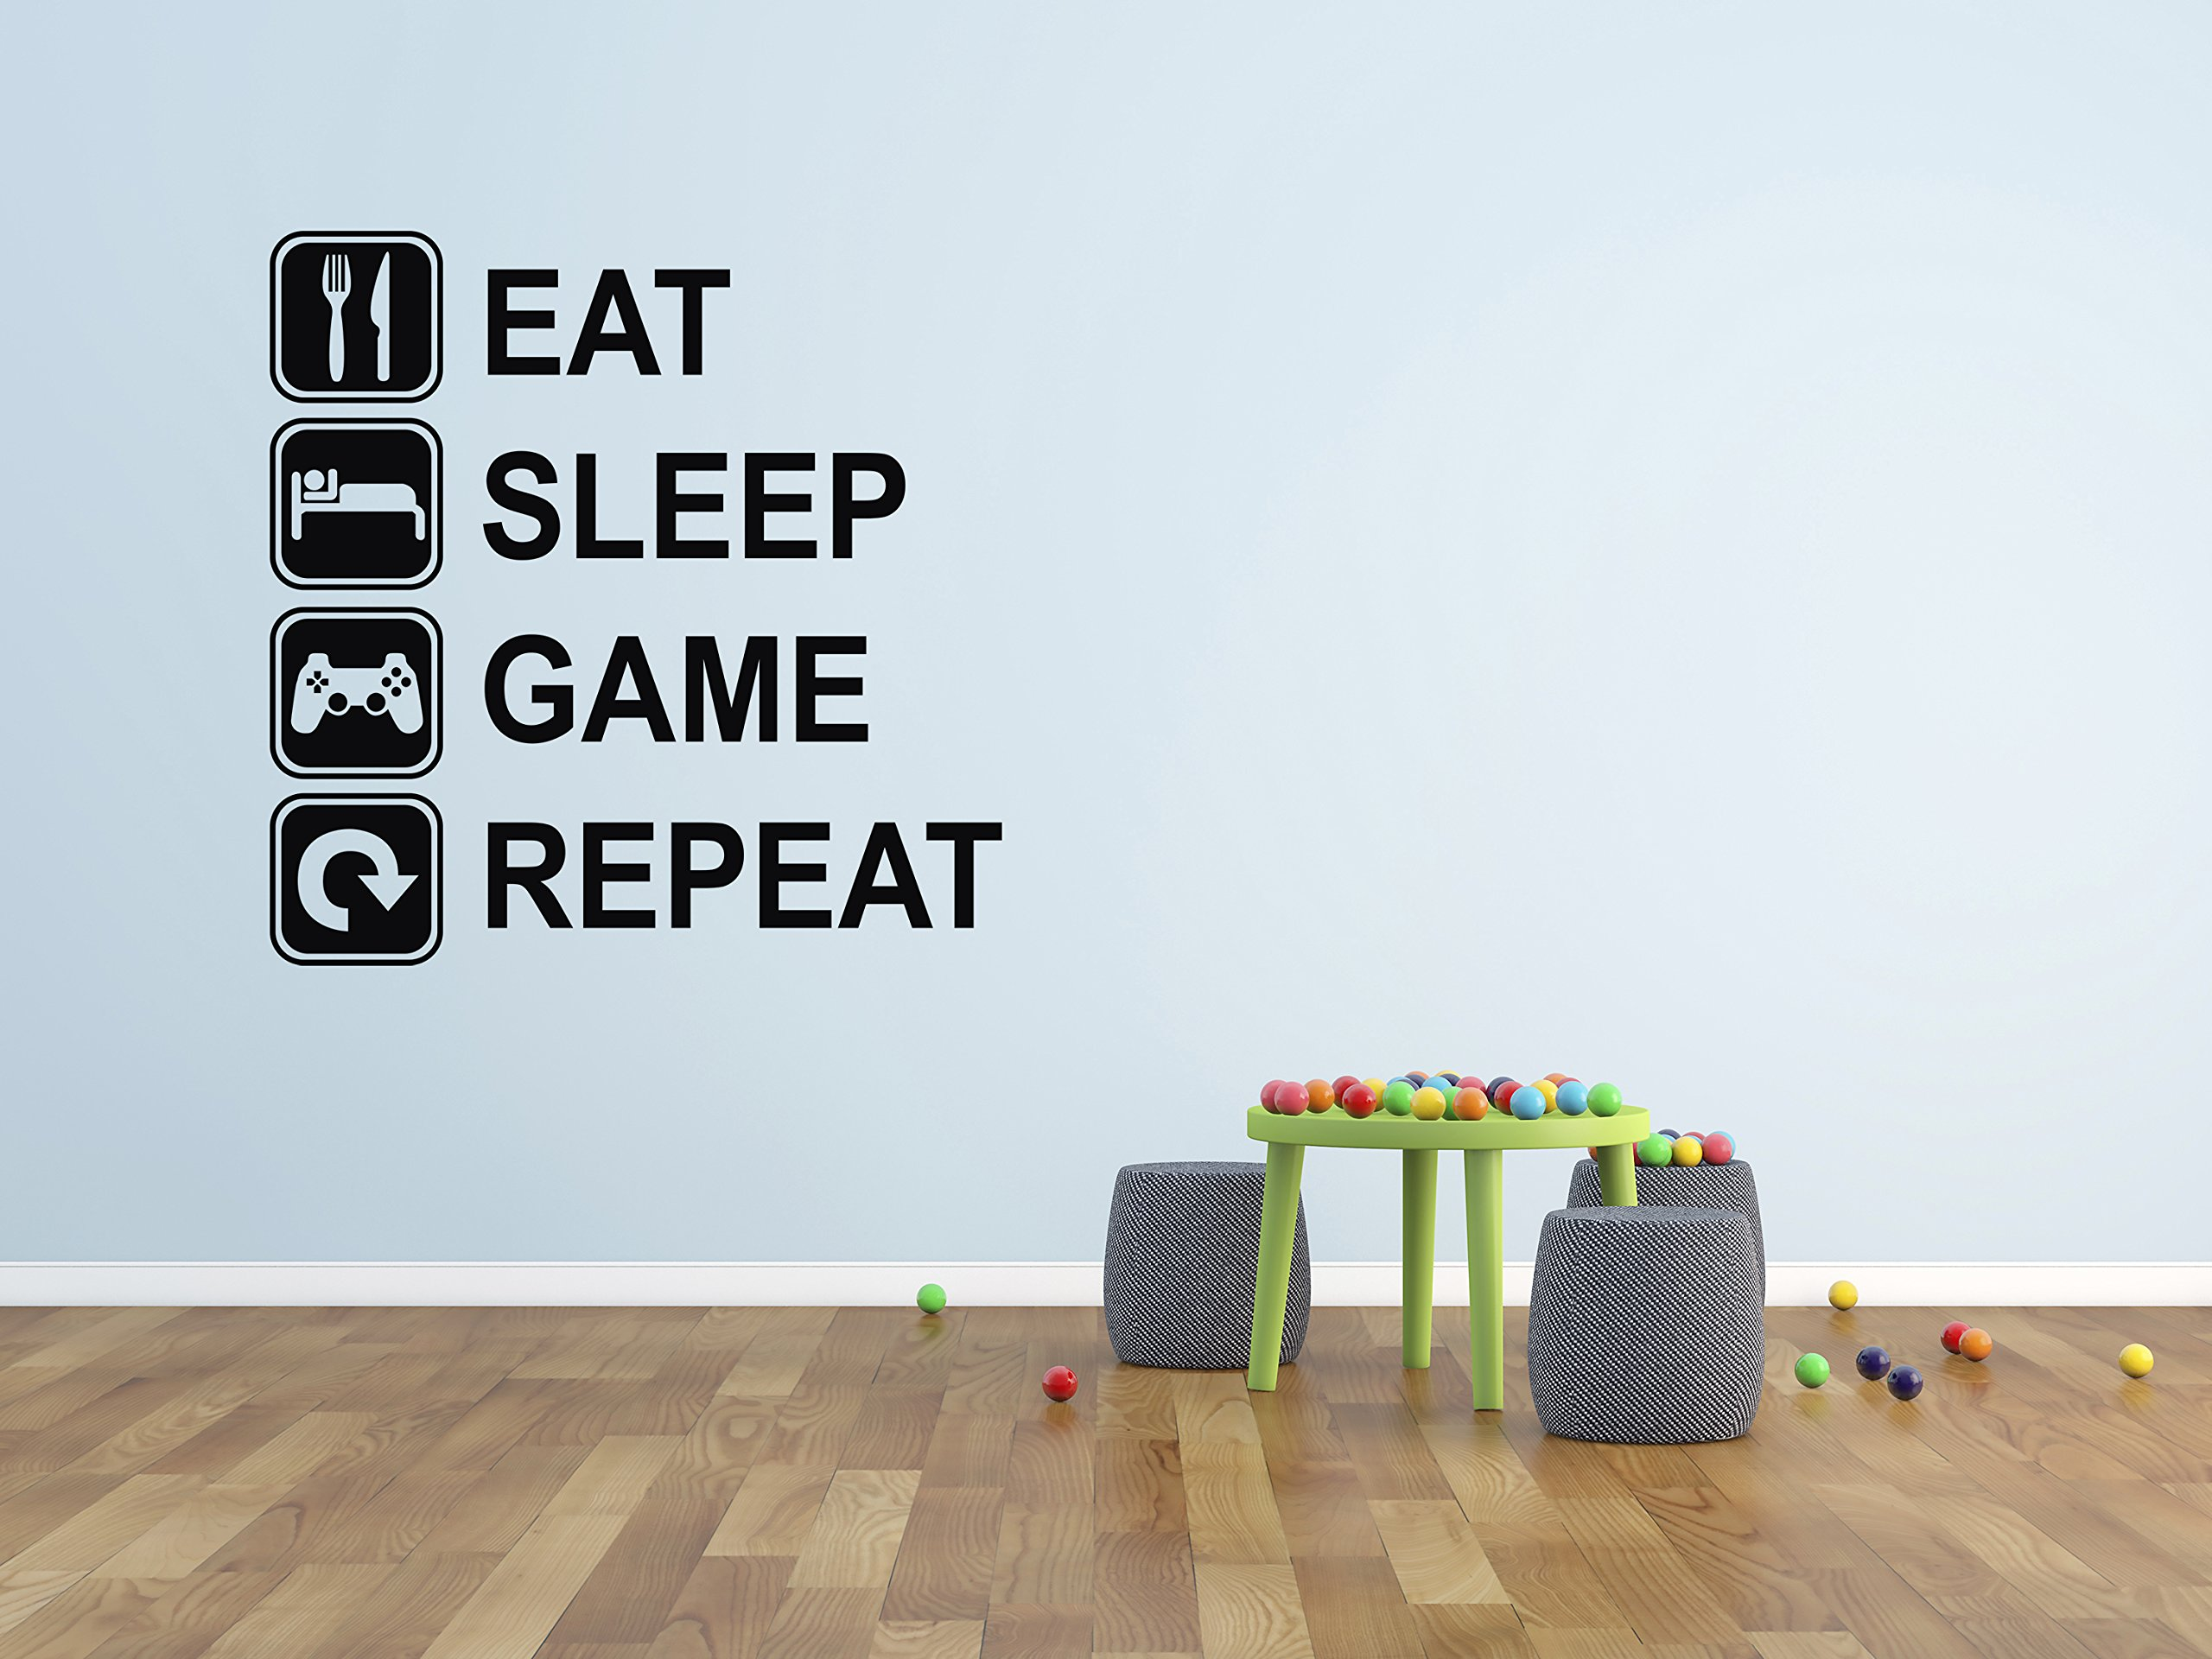 Eat Sleep Game Repeat Wall Decal - Gaming Wall Decals - Art Mural Player Decor Gamer Vinyl Sticker